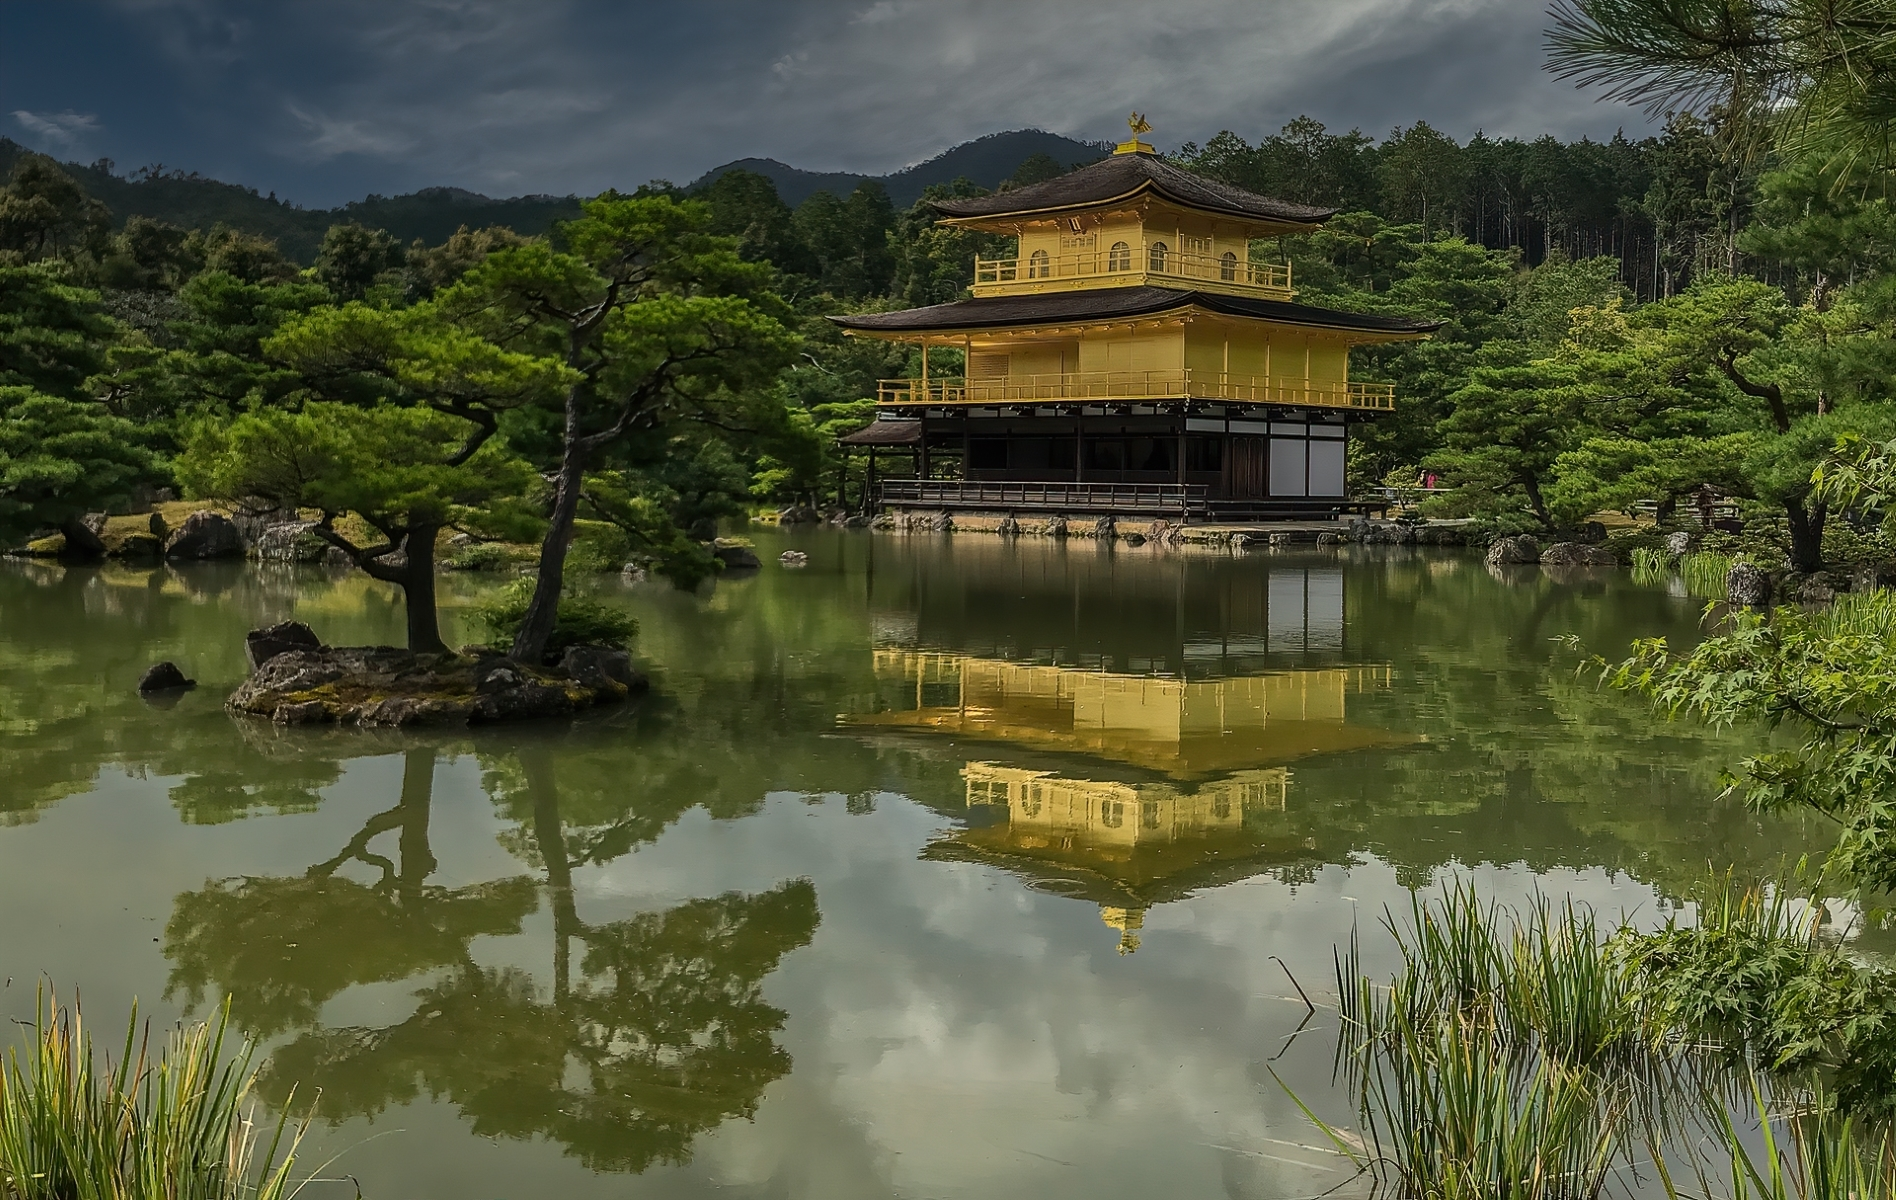 Kinkakuji-Golden-Pavilion-__whose-top-two-floors-are-covered-in-gold-leaf-in-Kyoto-Japan-PI-1-Place-by-Marilyn-Murata-VC